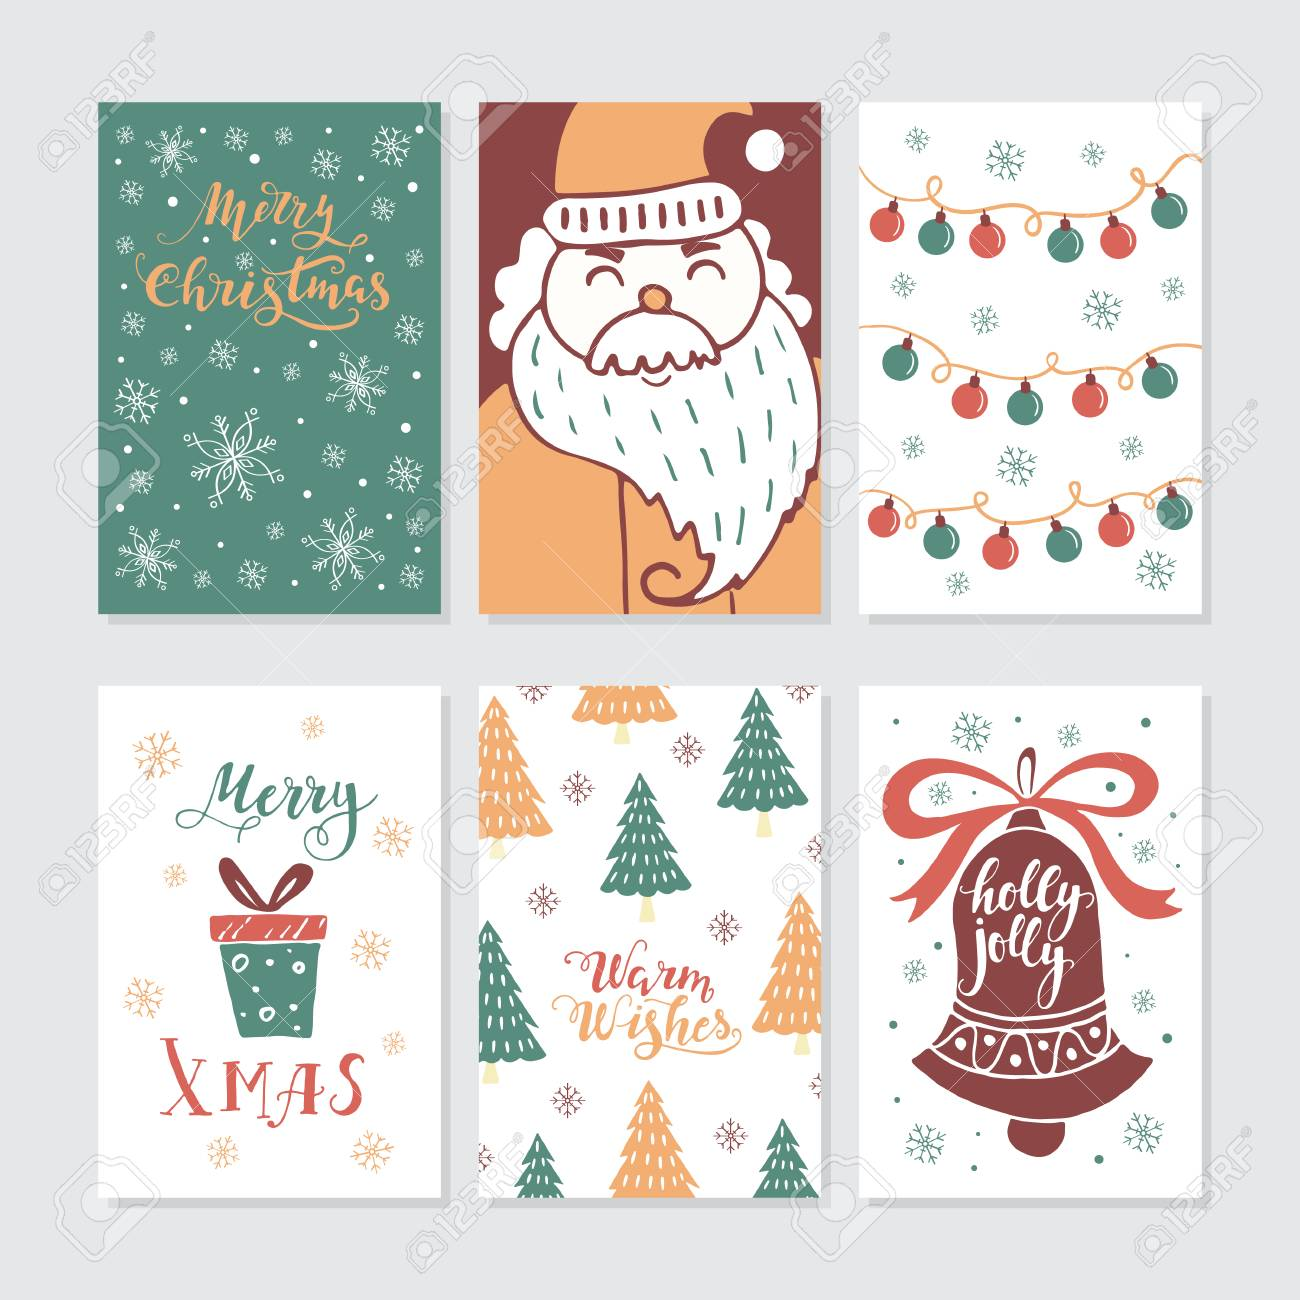 vector merry christmas greeting cards and invitations isolated